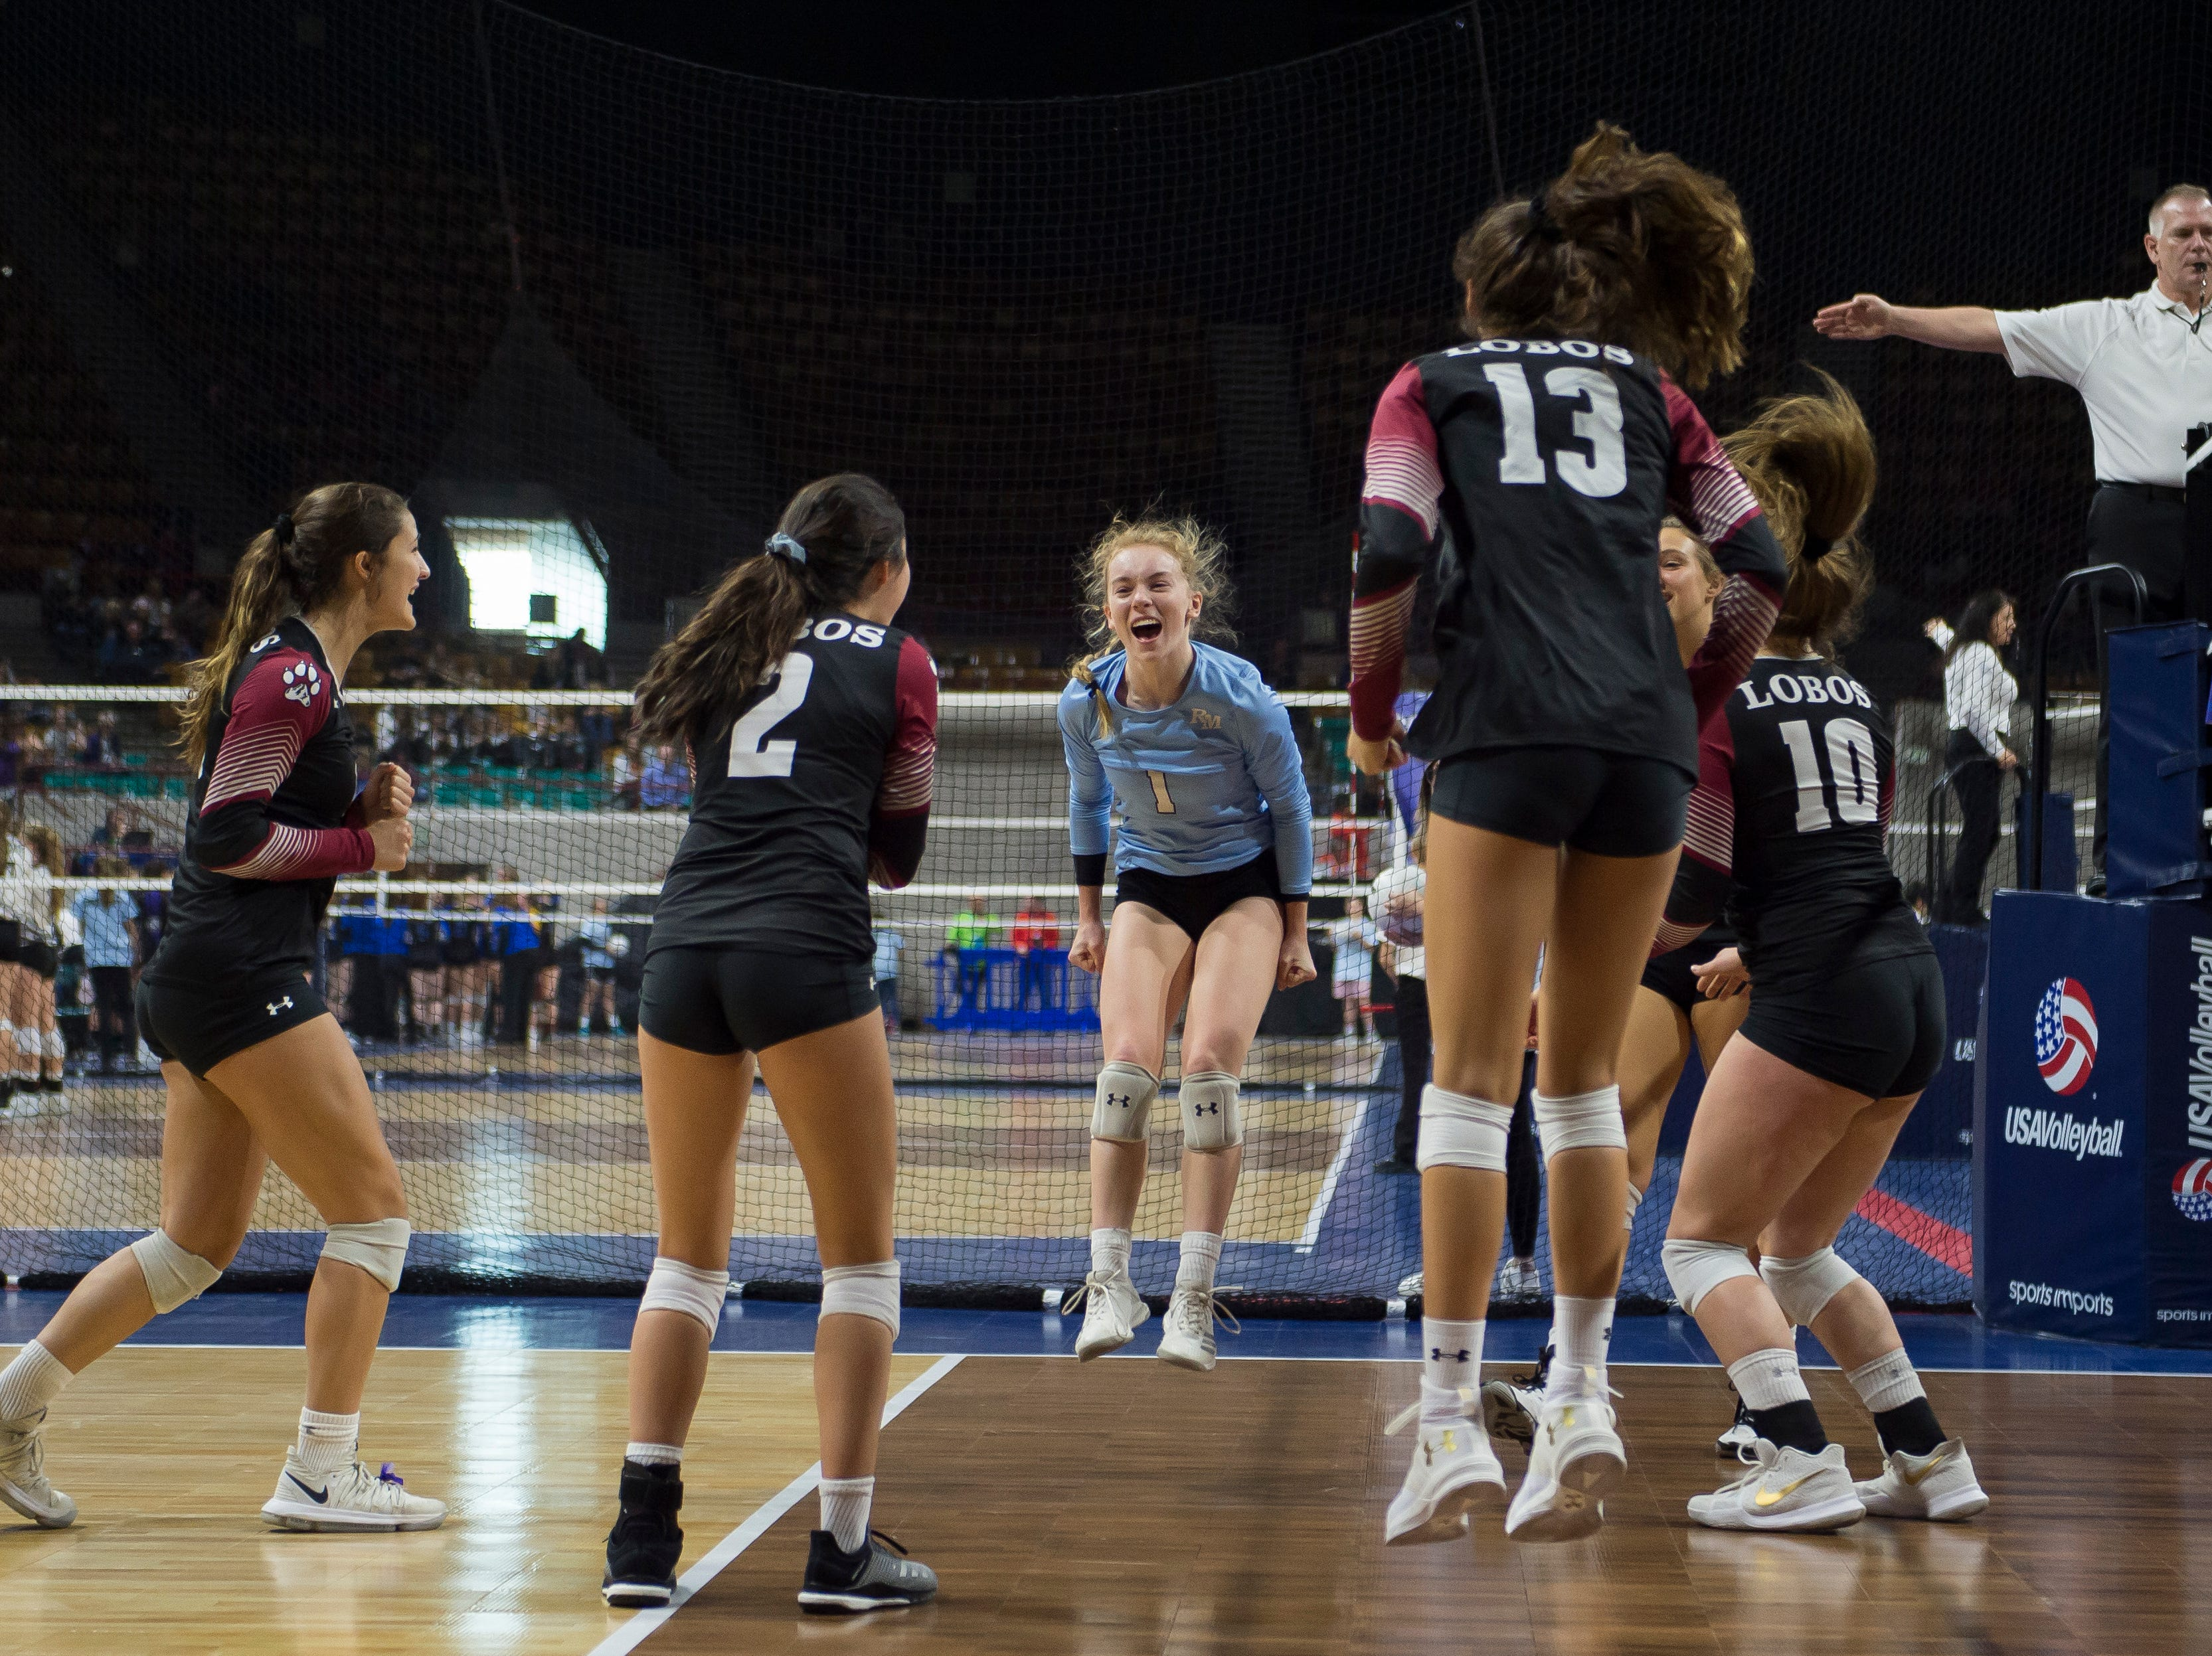 The Rocky Mountain High School volleyball team celebrates a point during a first round state game against Eaglecrest on Thursday, Nov. 8, 2018, at the Denver Coliseum in Denver, Colo.